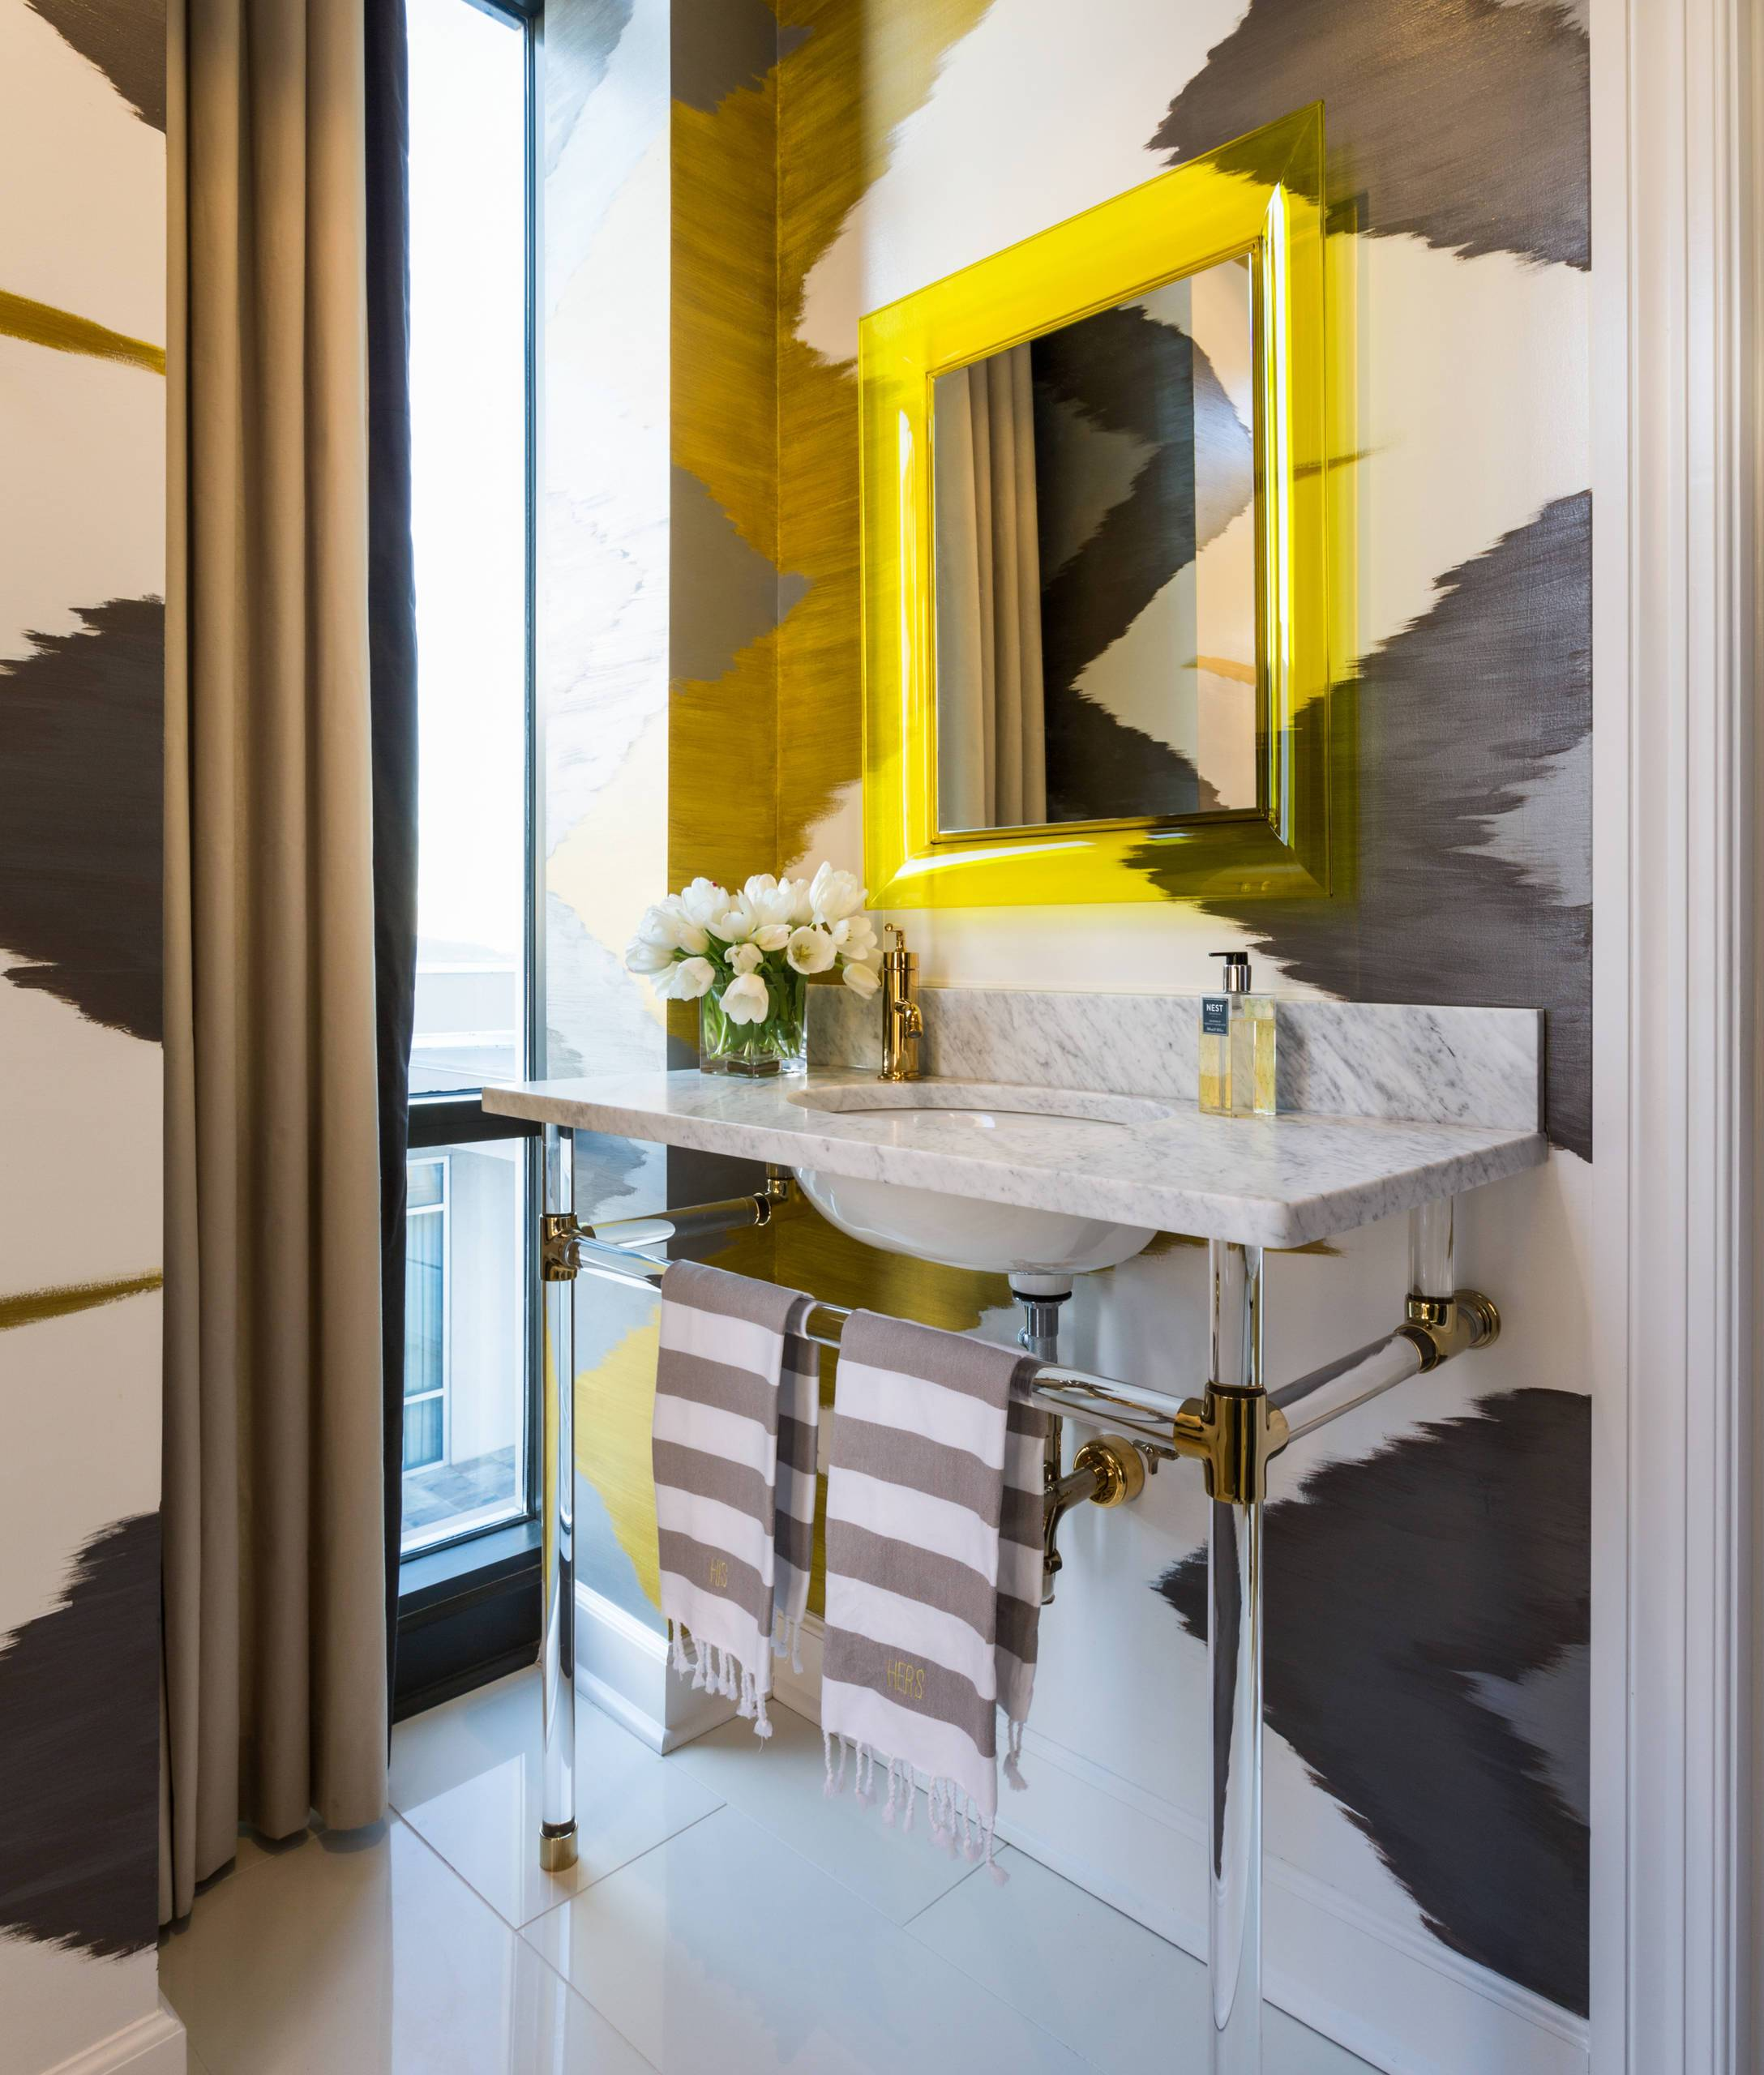 Bold-wallpaper-in-black-an-white-brings-intrigue-and-pattern-to-this-small-contemporary-bathroom-44057